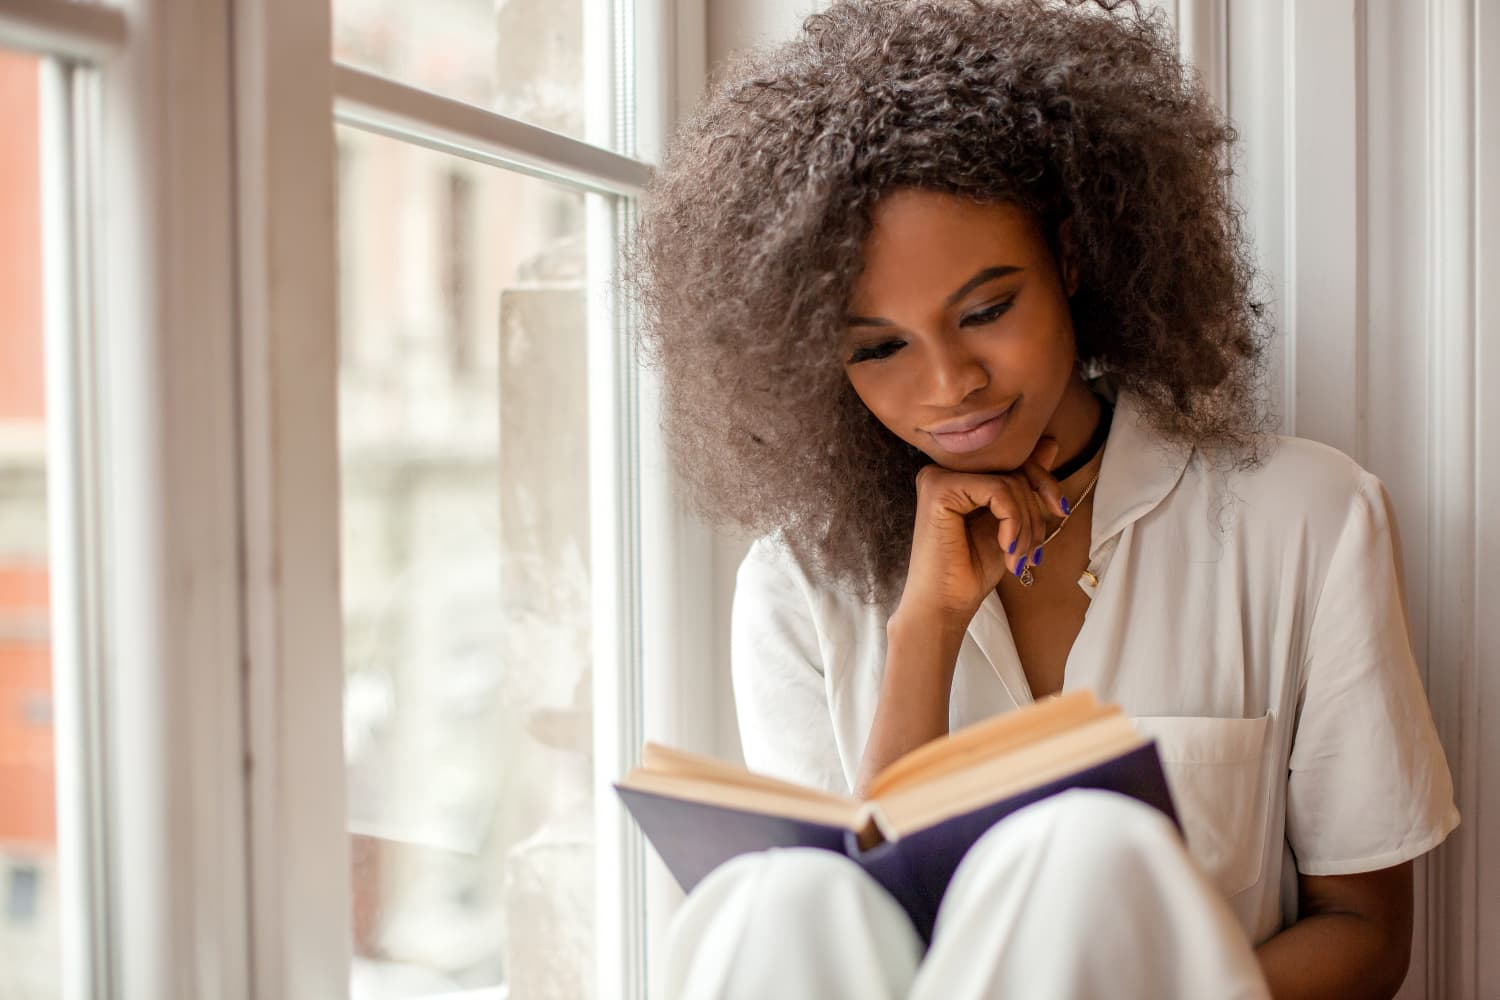 Black Authors, Bookstore Owners, and Literary Leaders Recommend Their Favorite Books